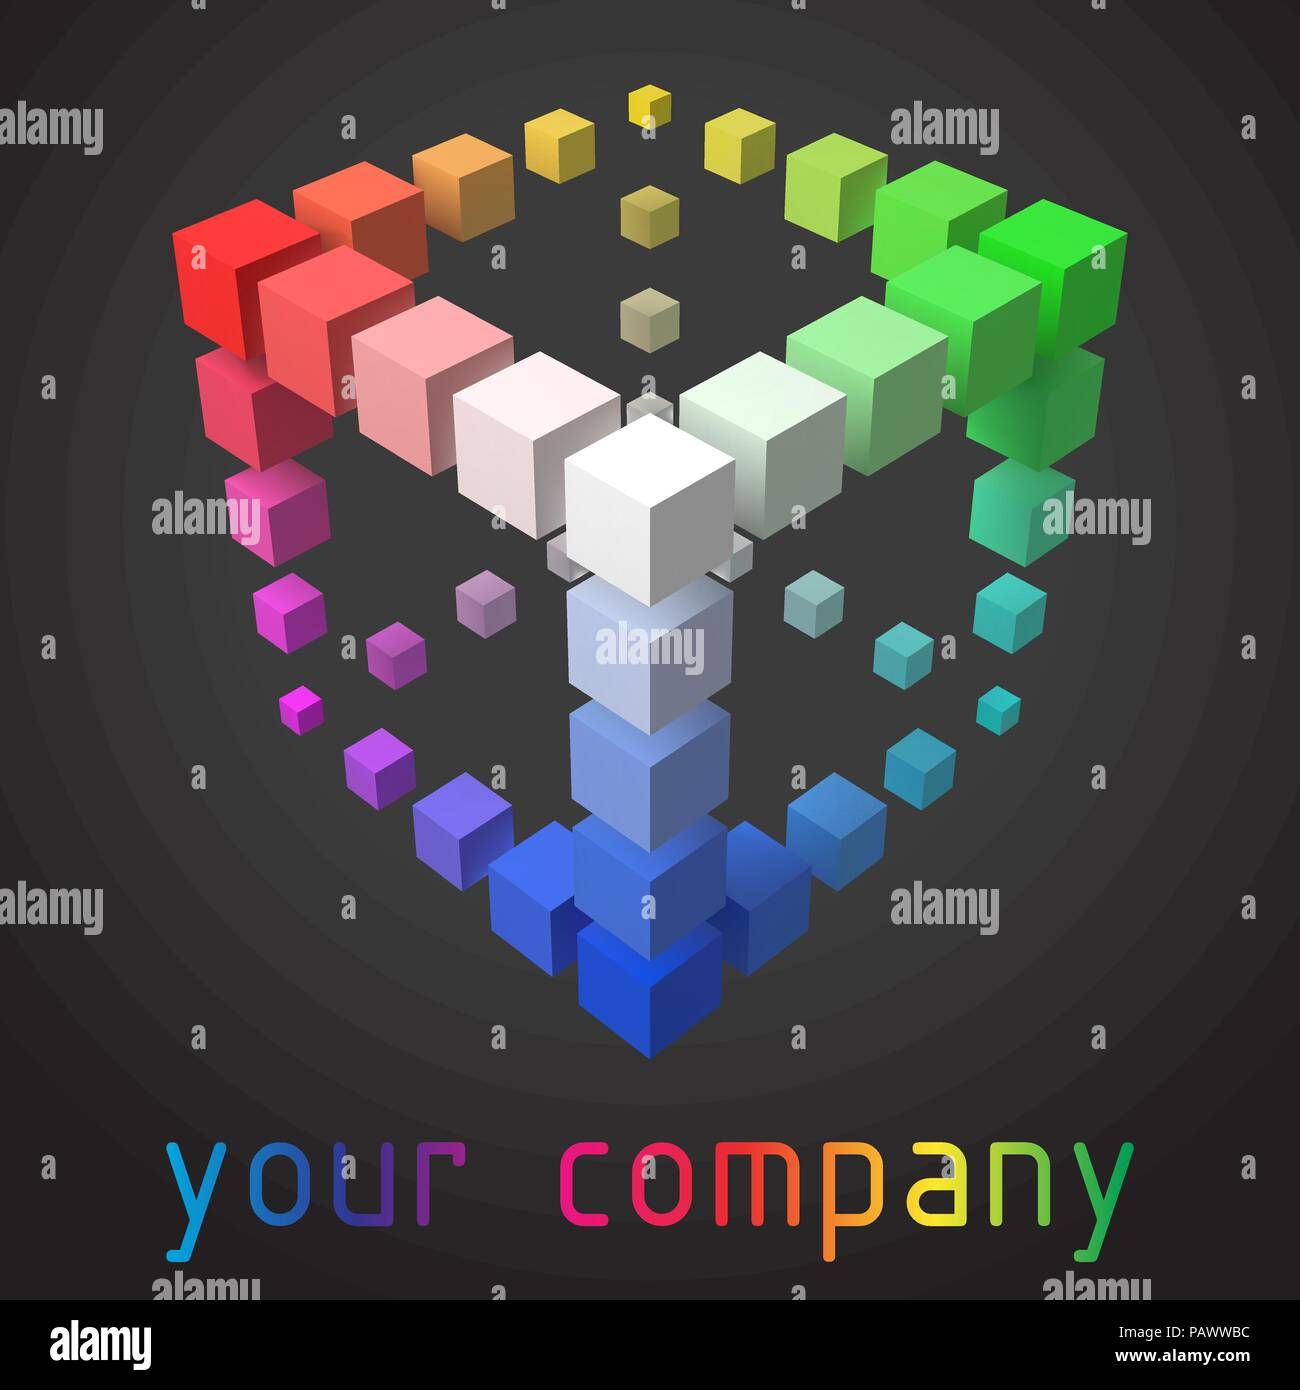 3d style vector logo design with cubes. suitable for presenting any company, organization or personal business in different industries. - Stock Vector